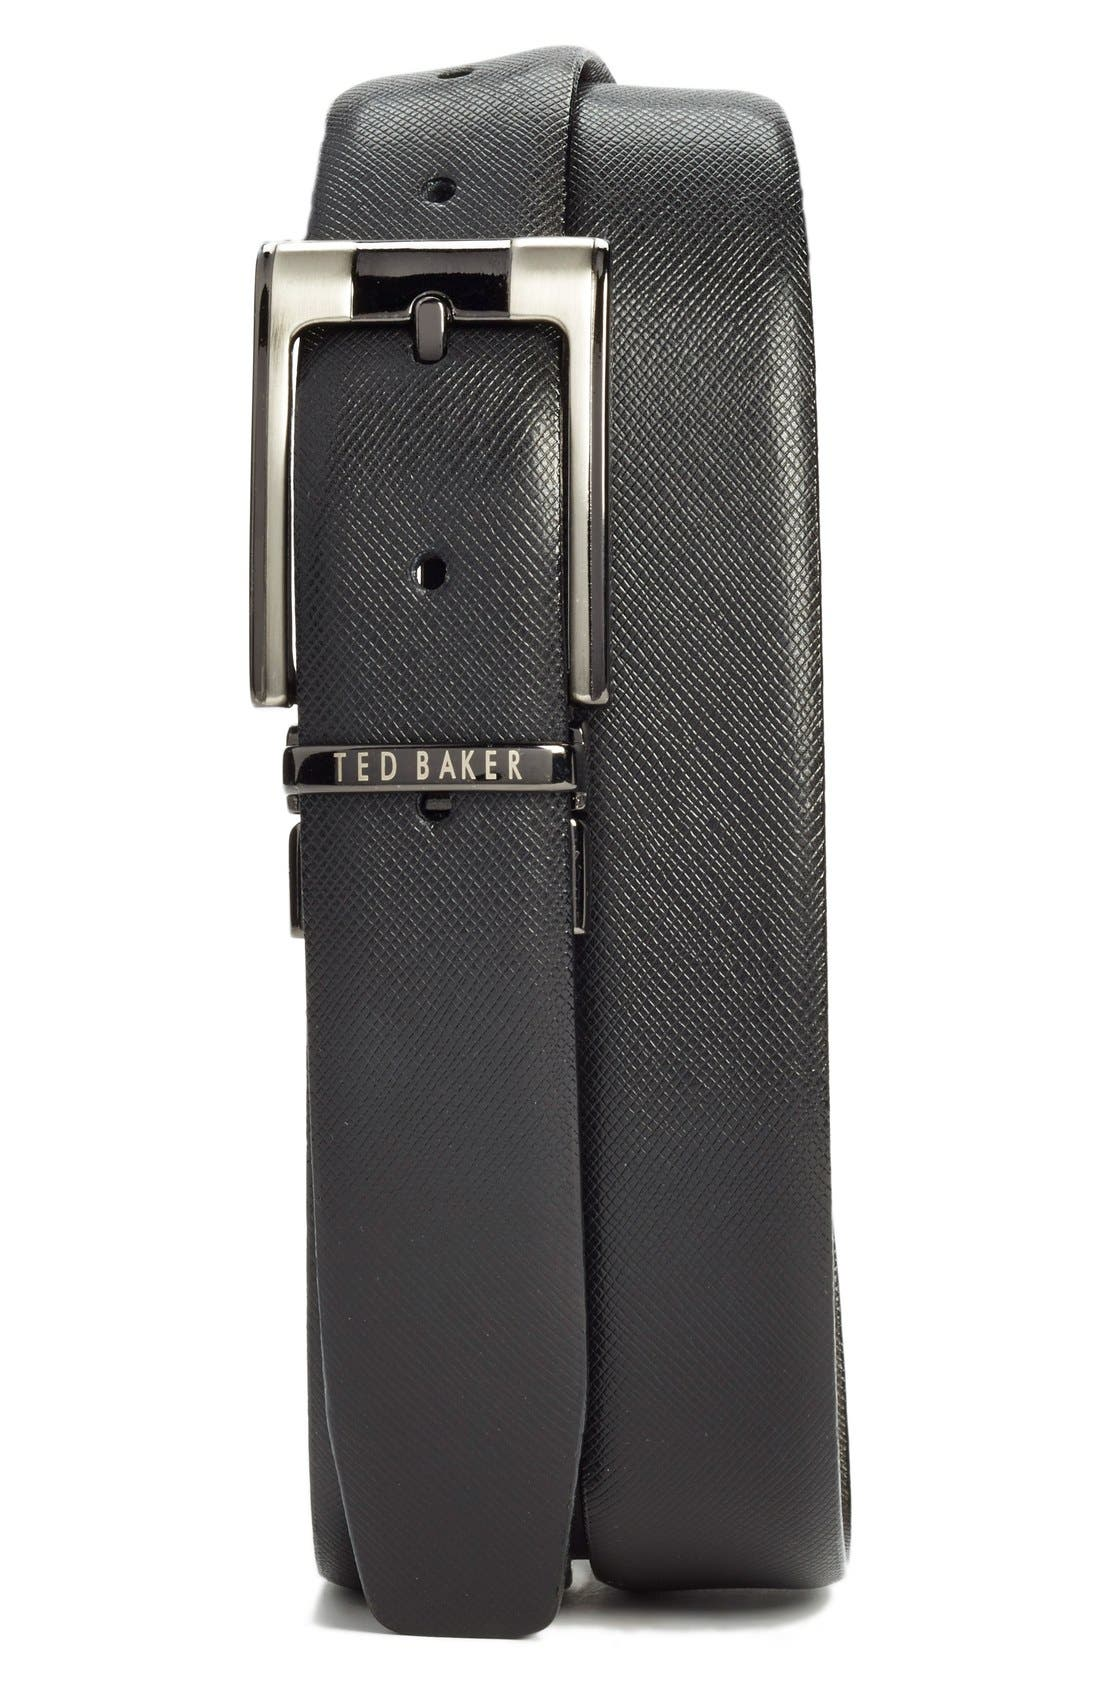 TED BAKER LONDON Reversible Leather Belt, Main, color, BLACK/ BROWN